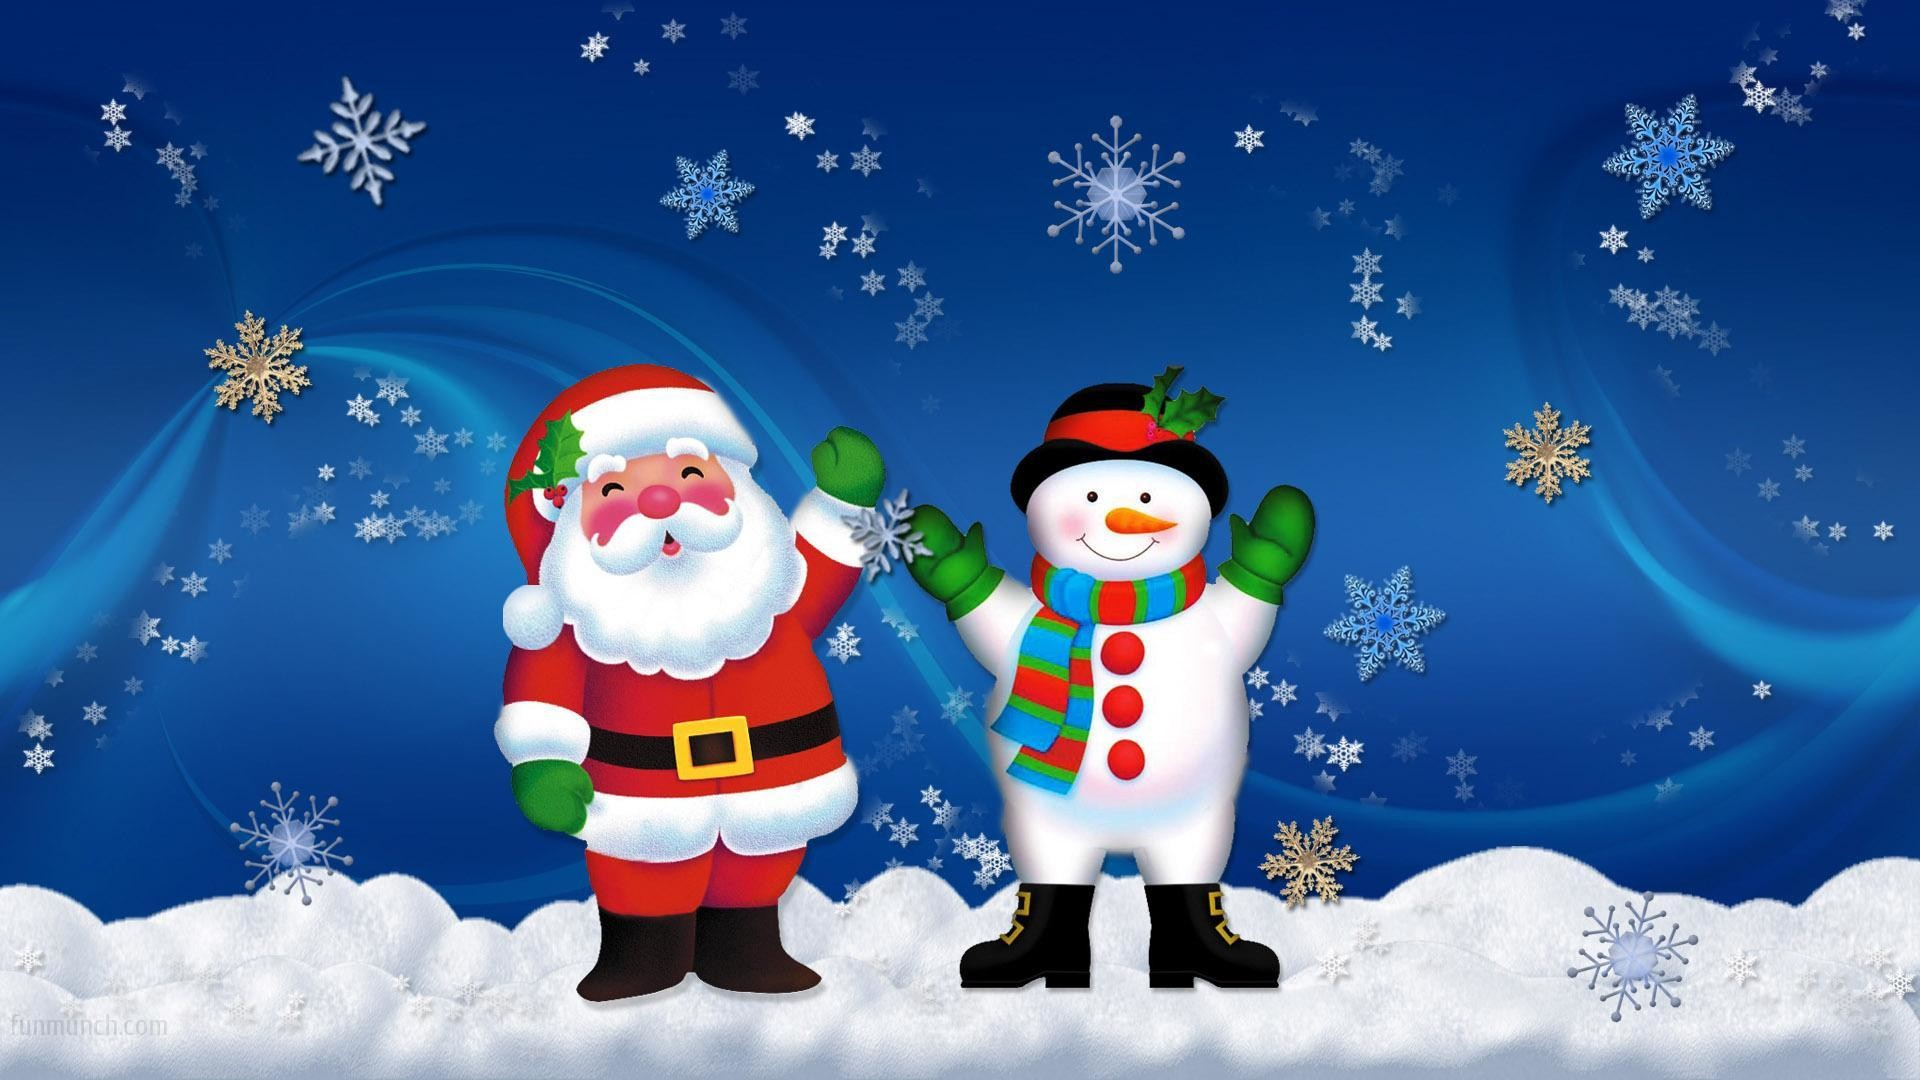 Top Gallery of Christmas Backgrounds: px, Raguel Mcminn